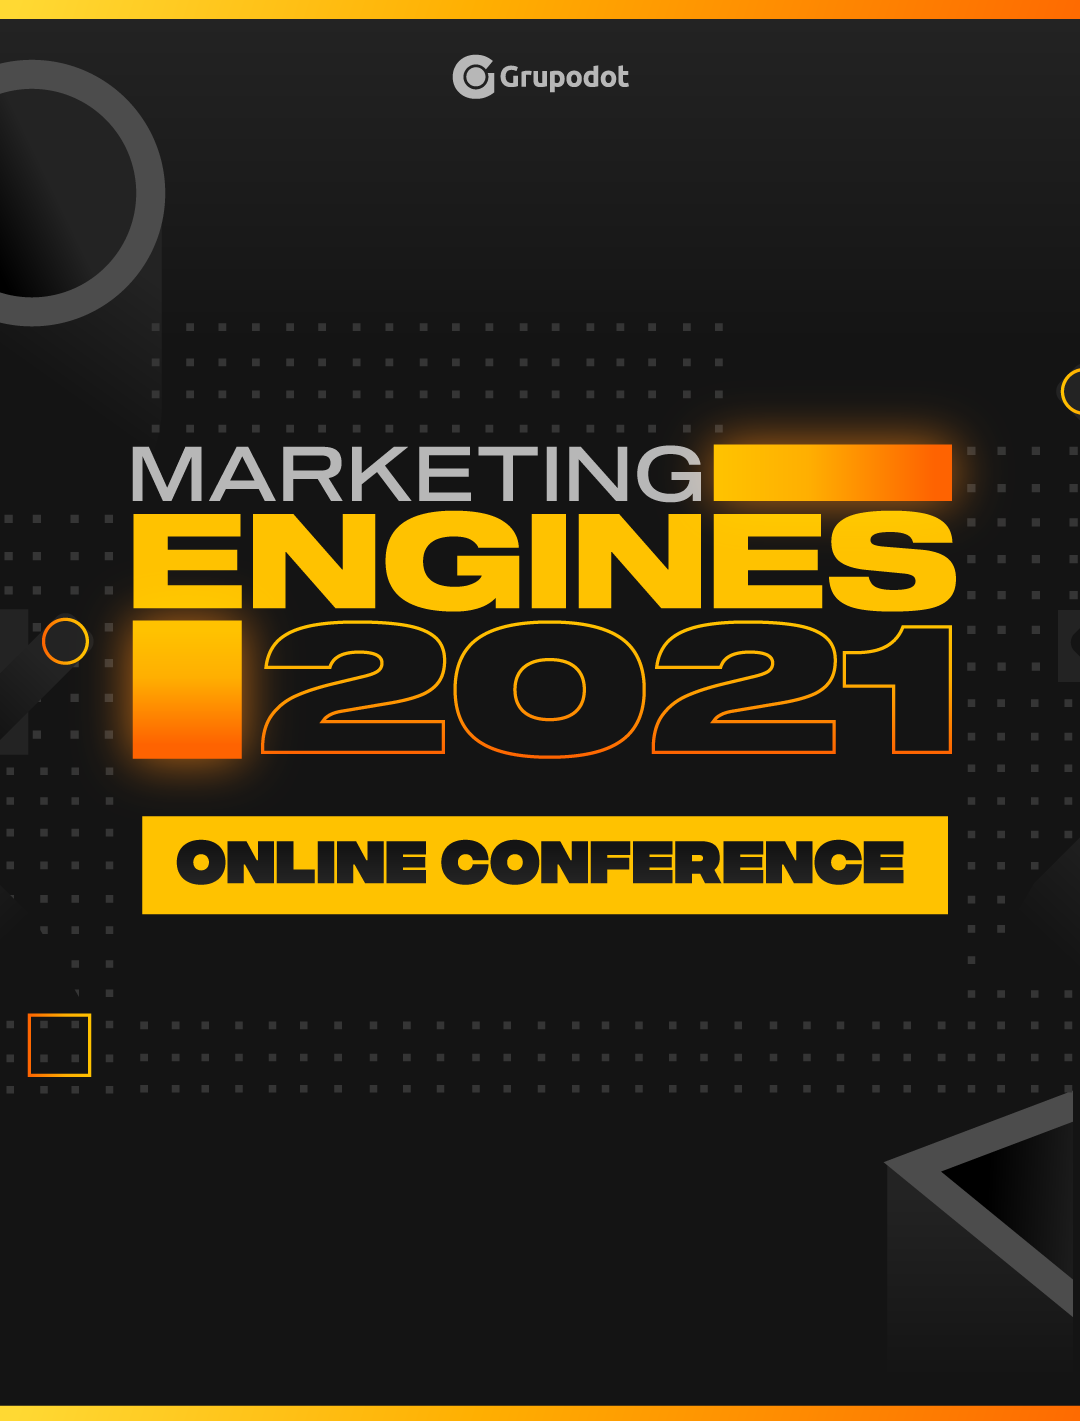 marketing engines 2021 online conference